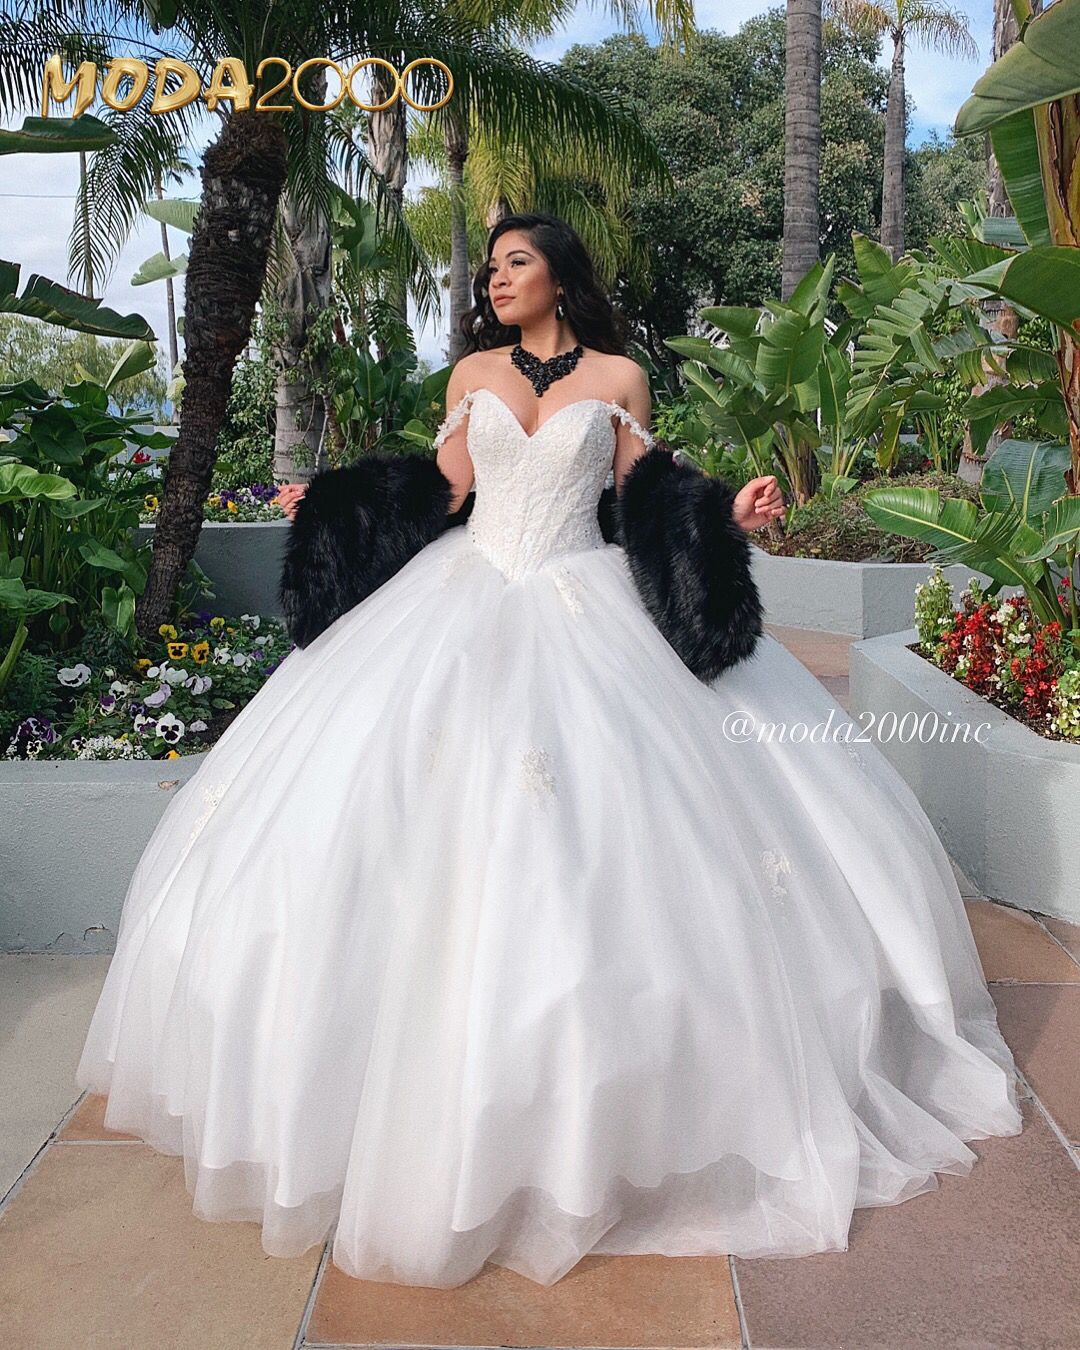 White Off The Shoulder Quinceanera Dress White Quinceanera Dresses Quinceanera Dresses Quince Dresses [ 1350 x 1080 Pixel ]